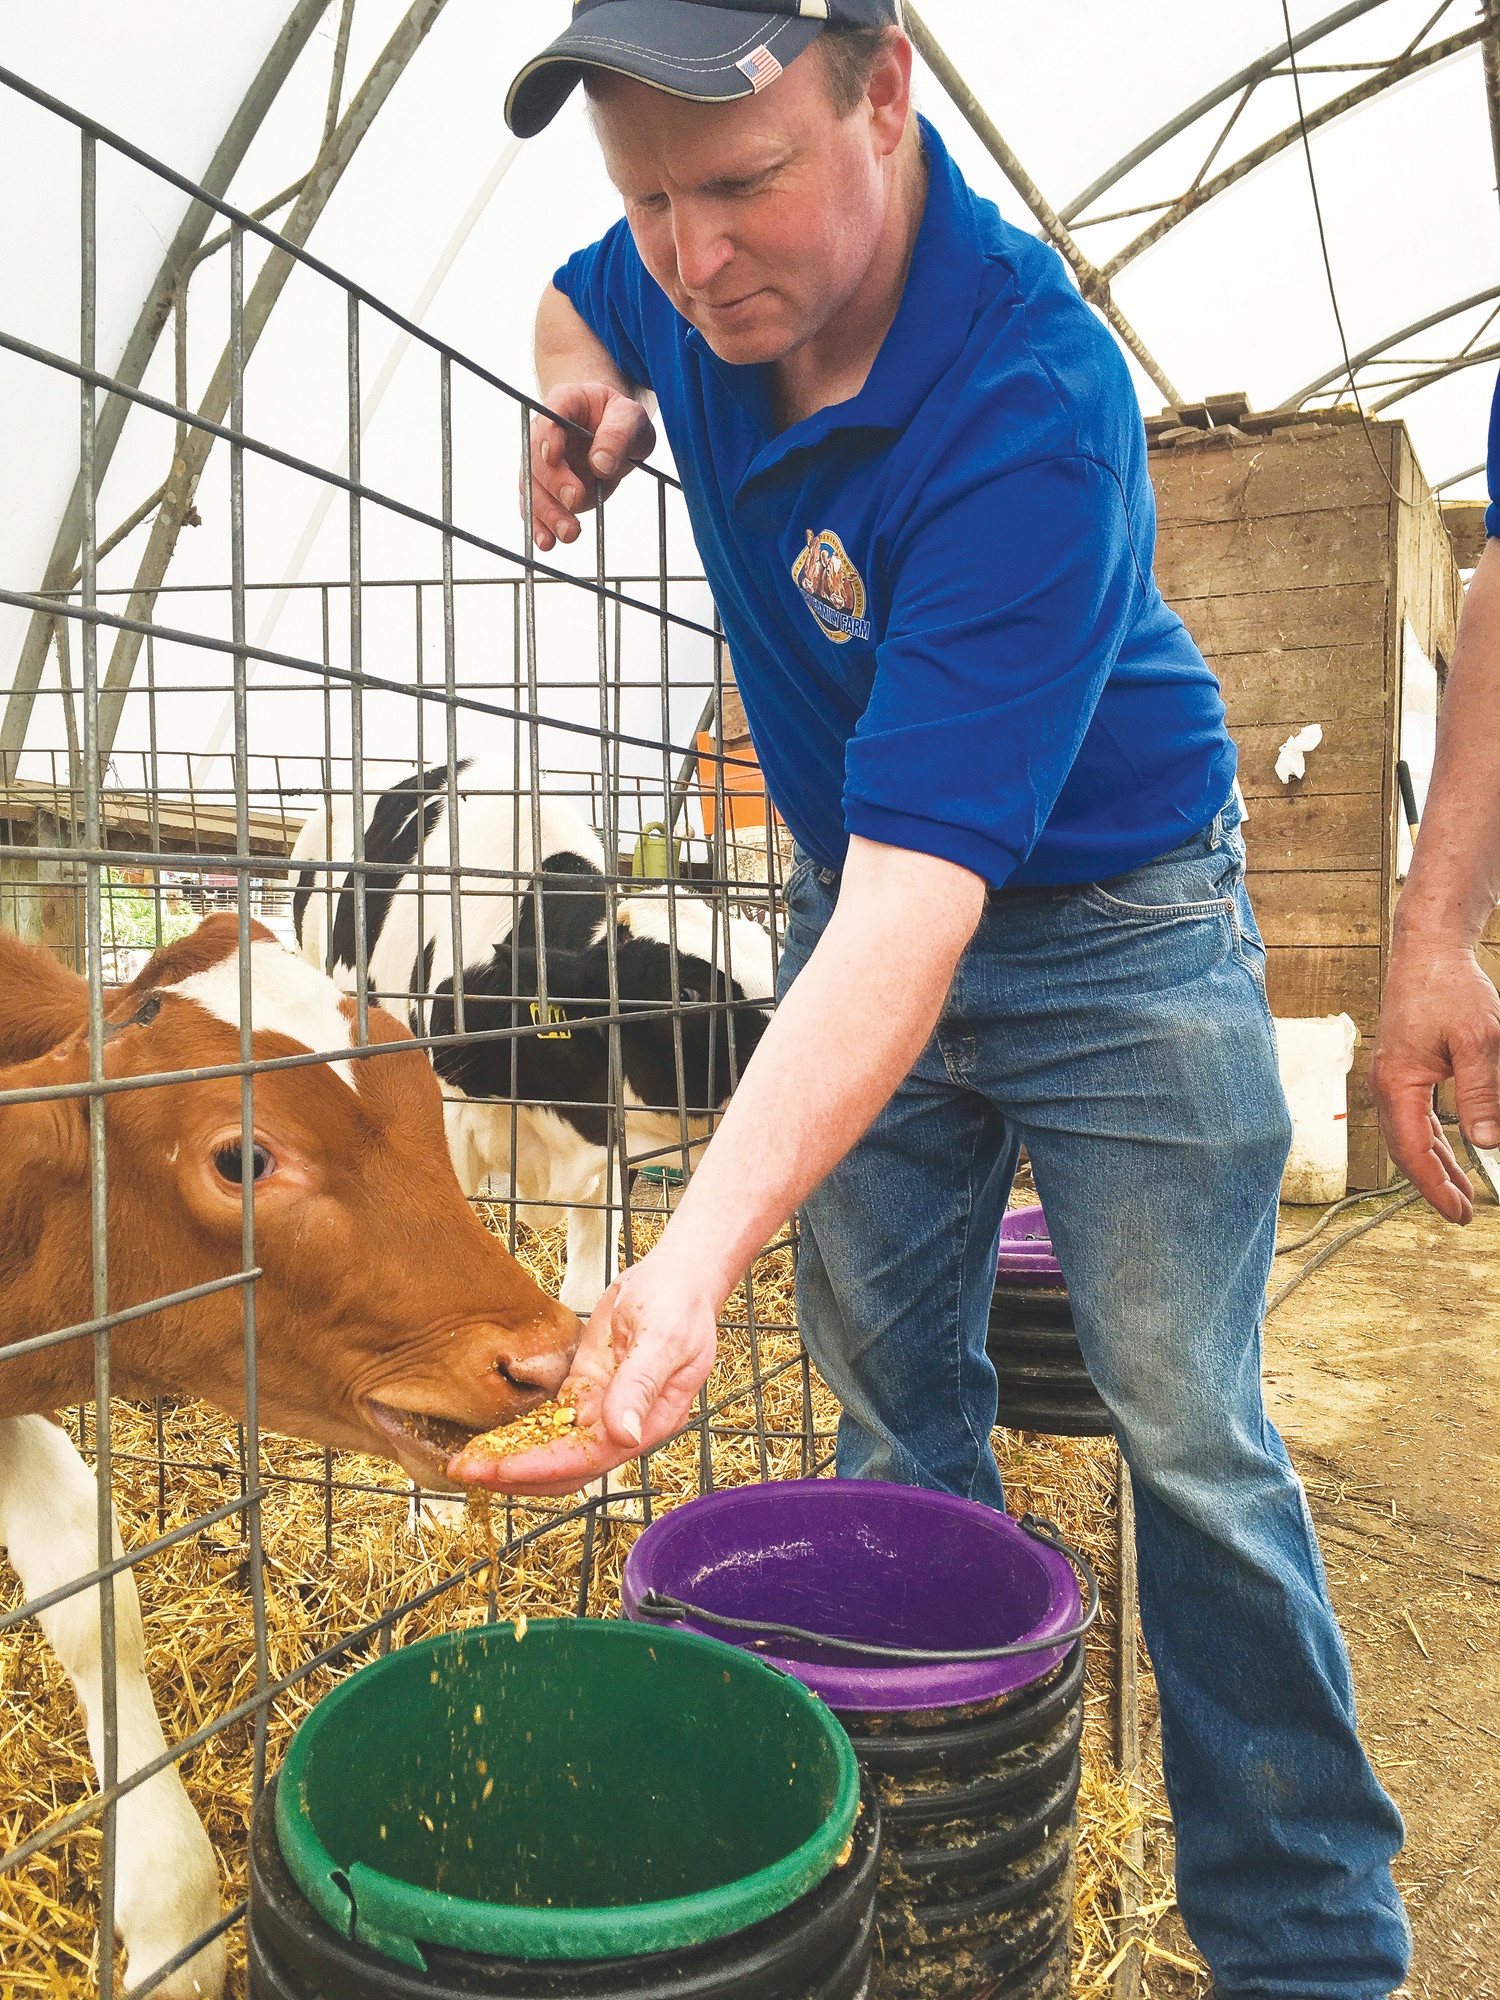 Dan Ripley, of the Ripley Family Farm in Moravia, New York, feeds a Guernsey calf. Some cows on the farm naturally produce milk without a protein some people blame for indigestion.